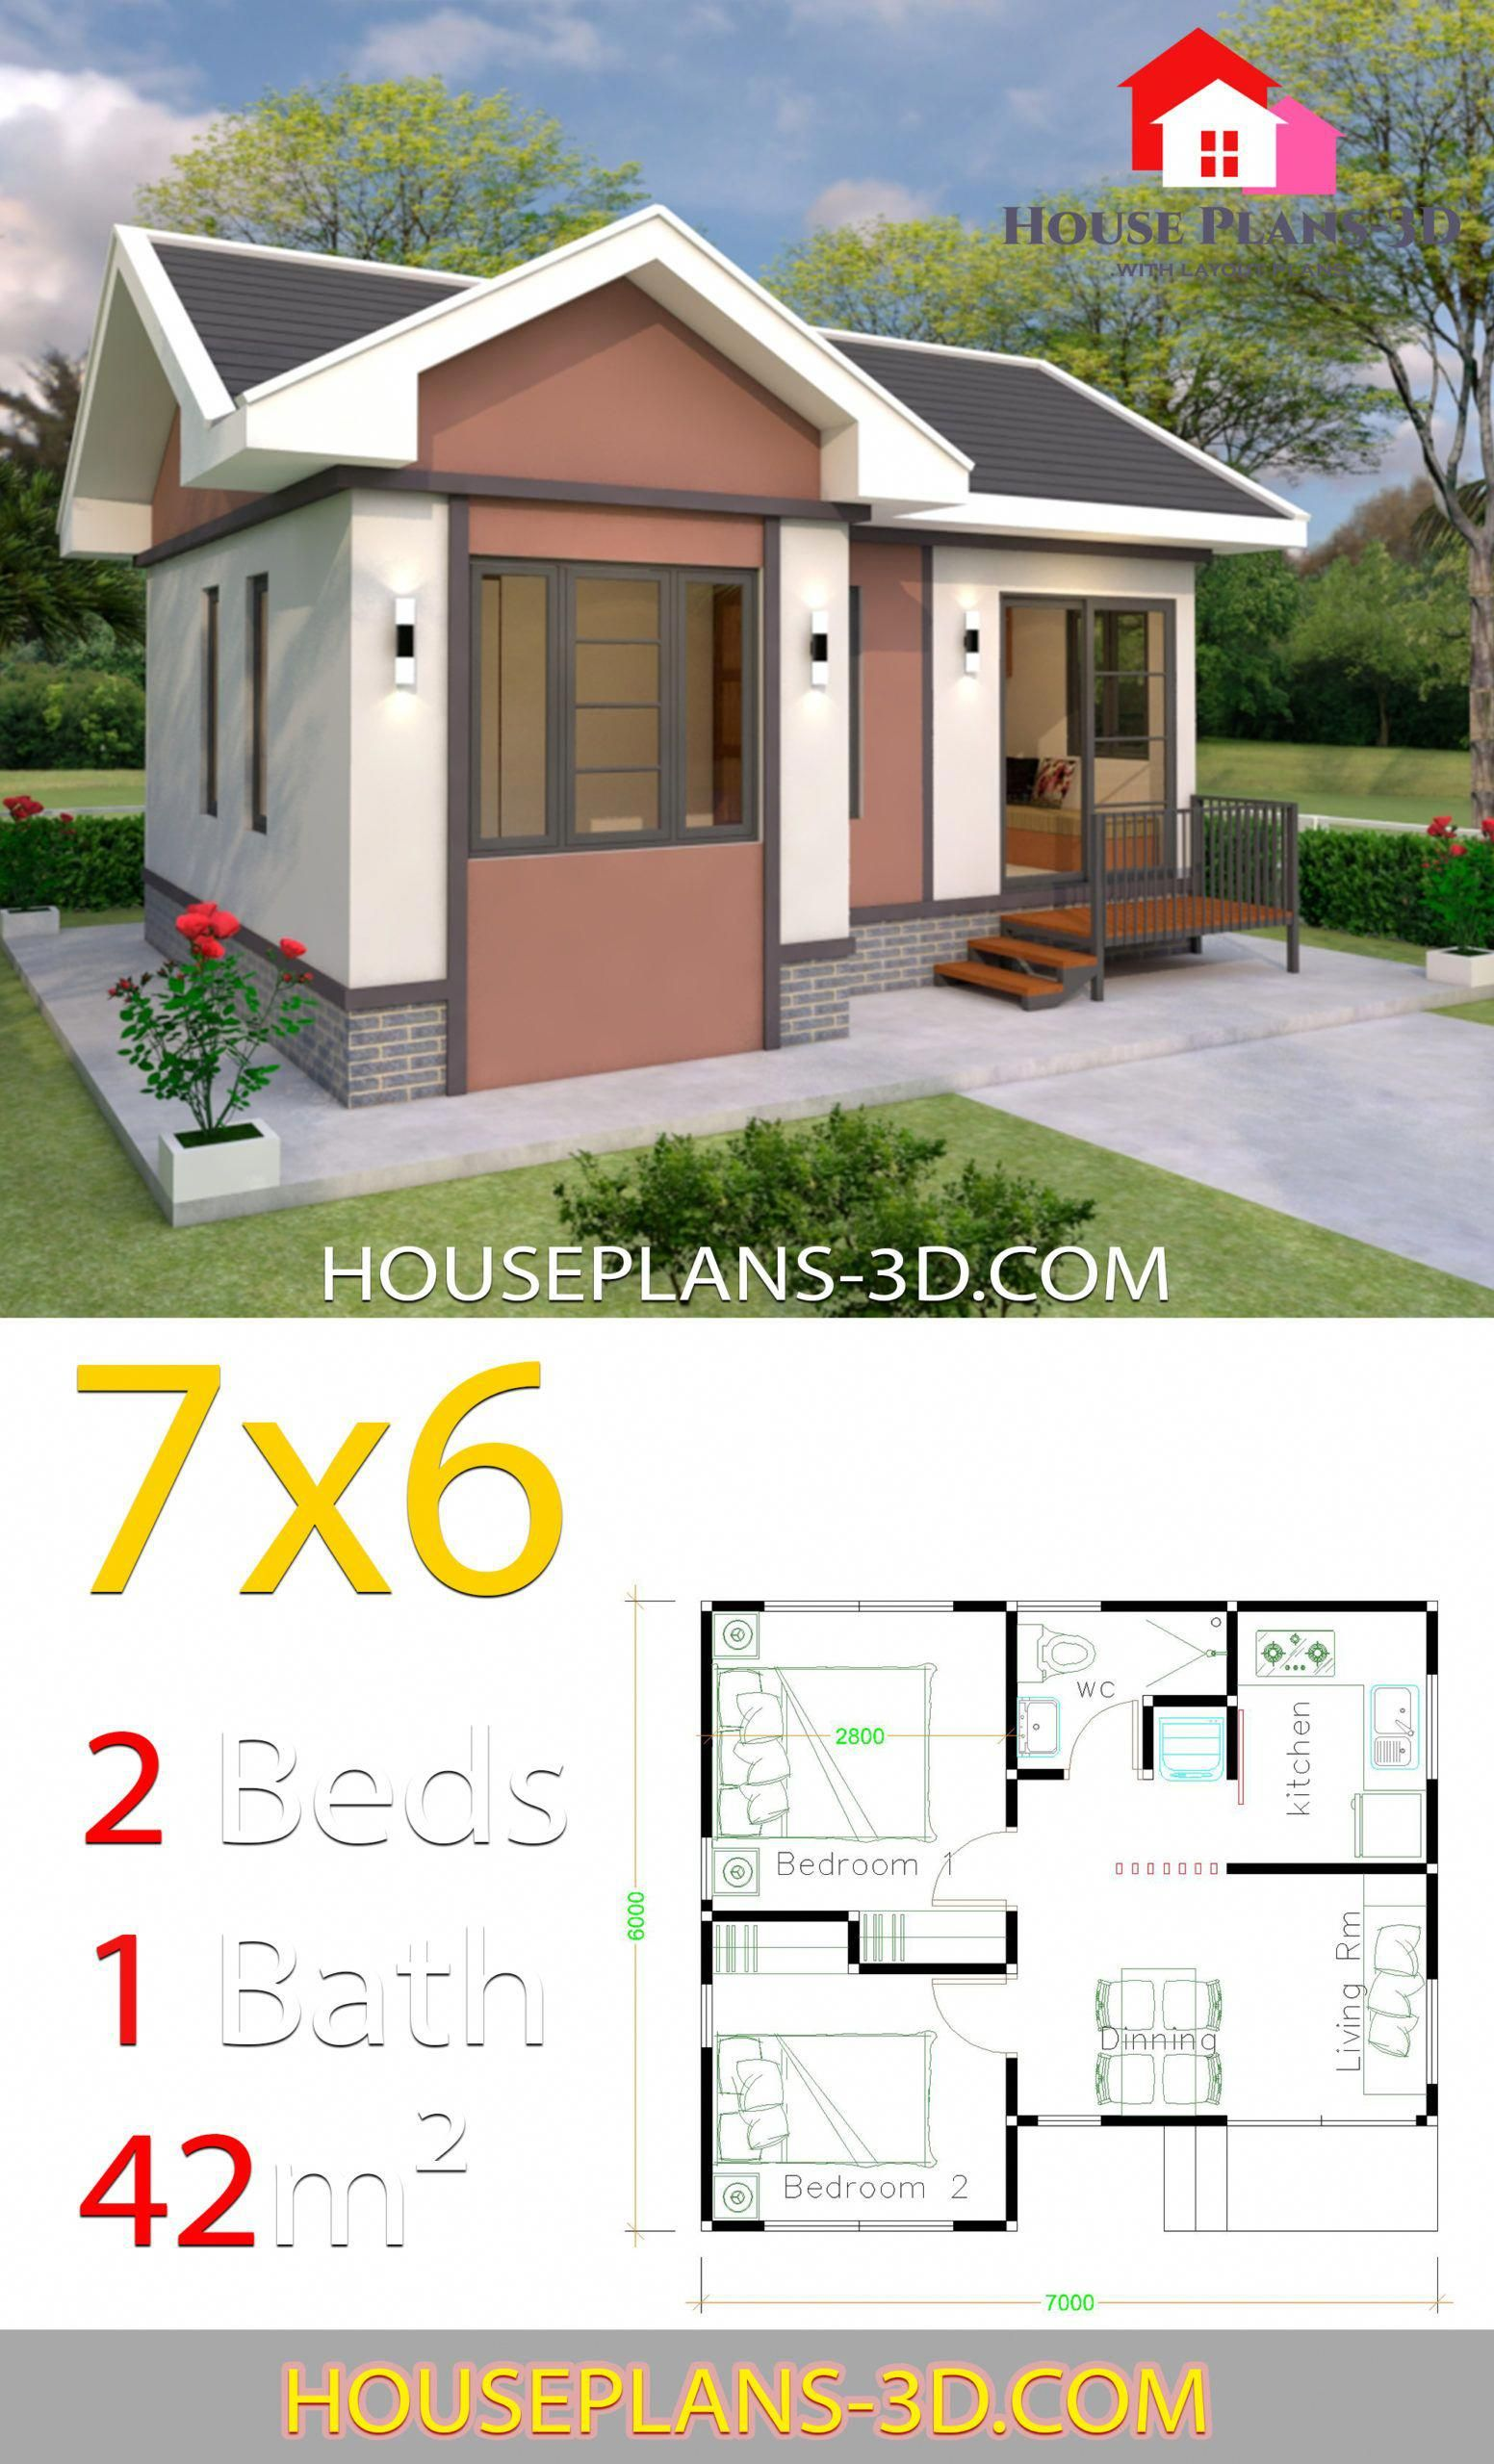 Good Looking Photo Roofphotography Gable Roof House House Plans House Construction Plan